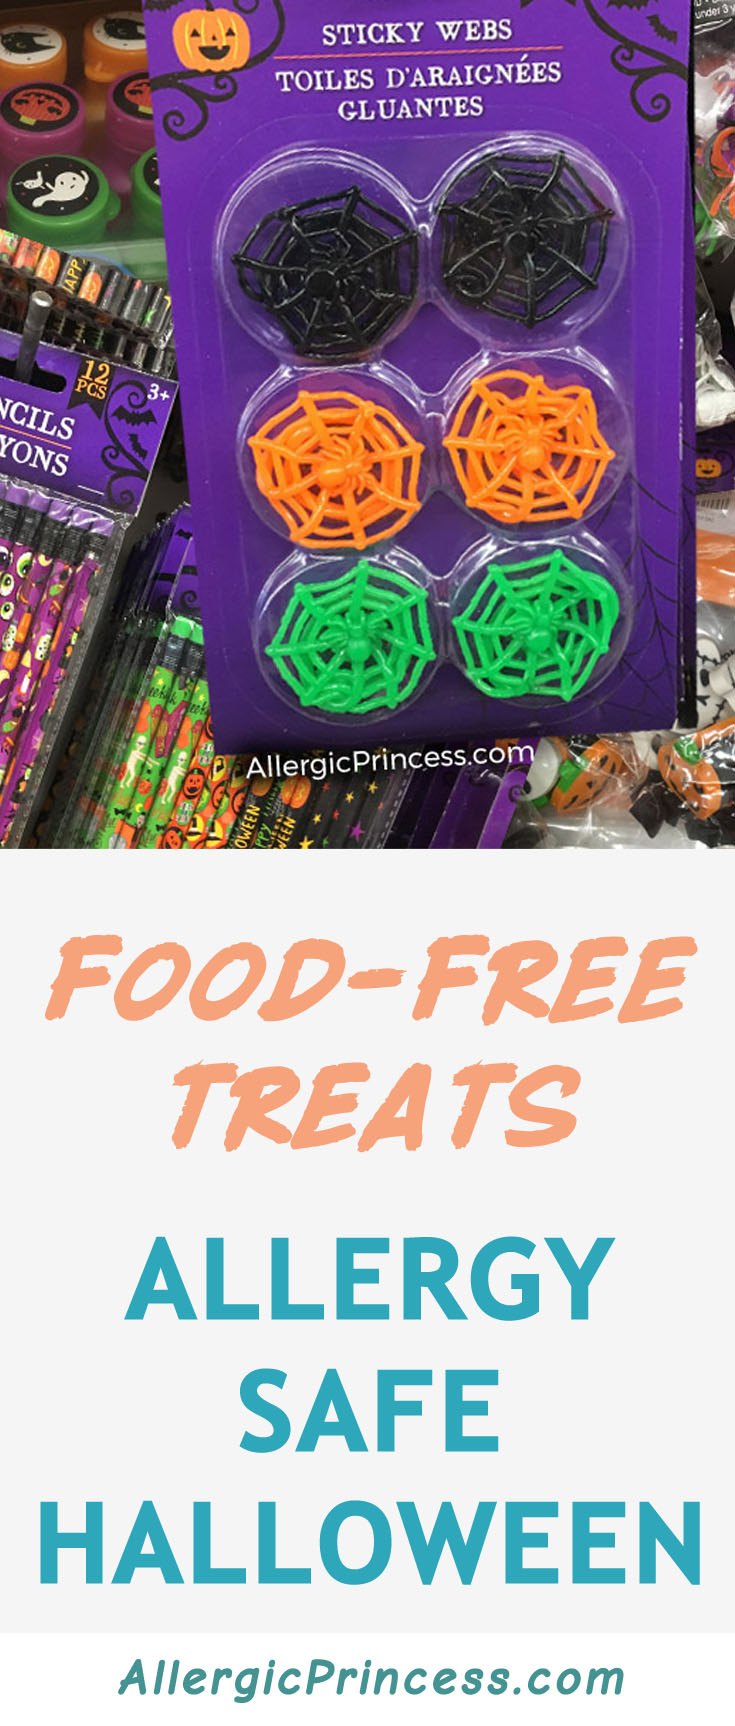 Food-free Halloween Treats for an Allergy Safe Trick or Treating